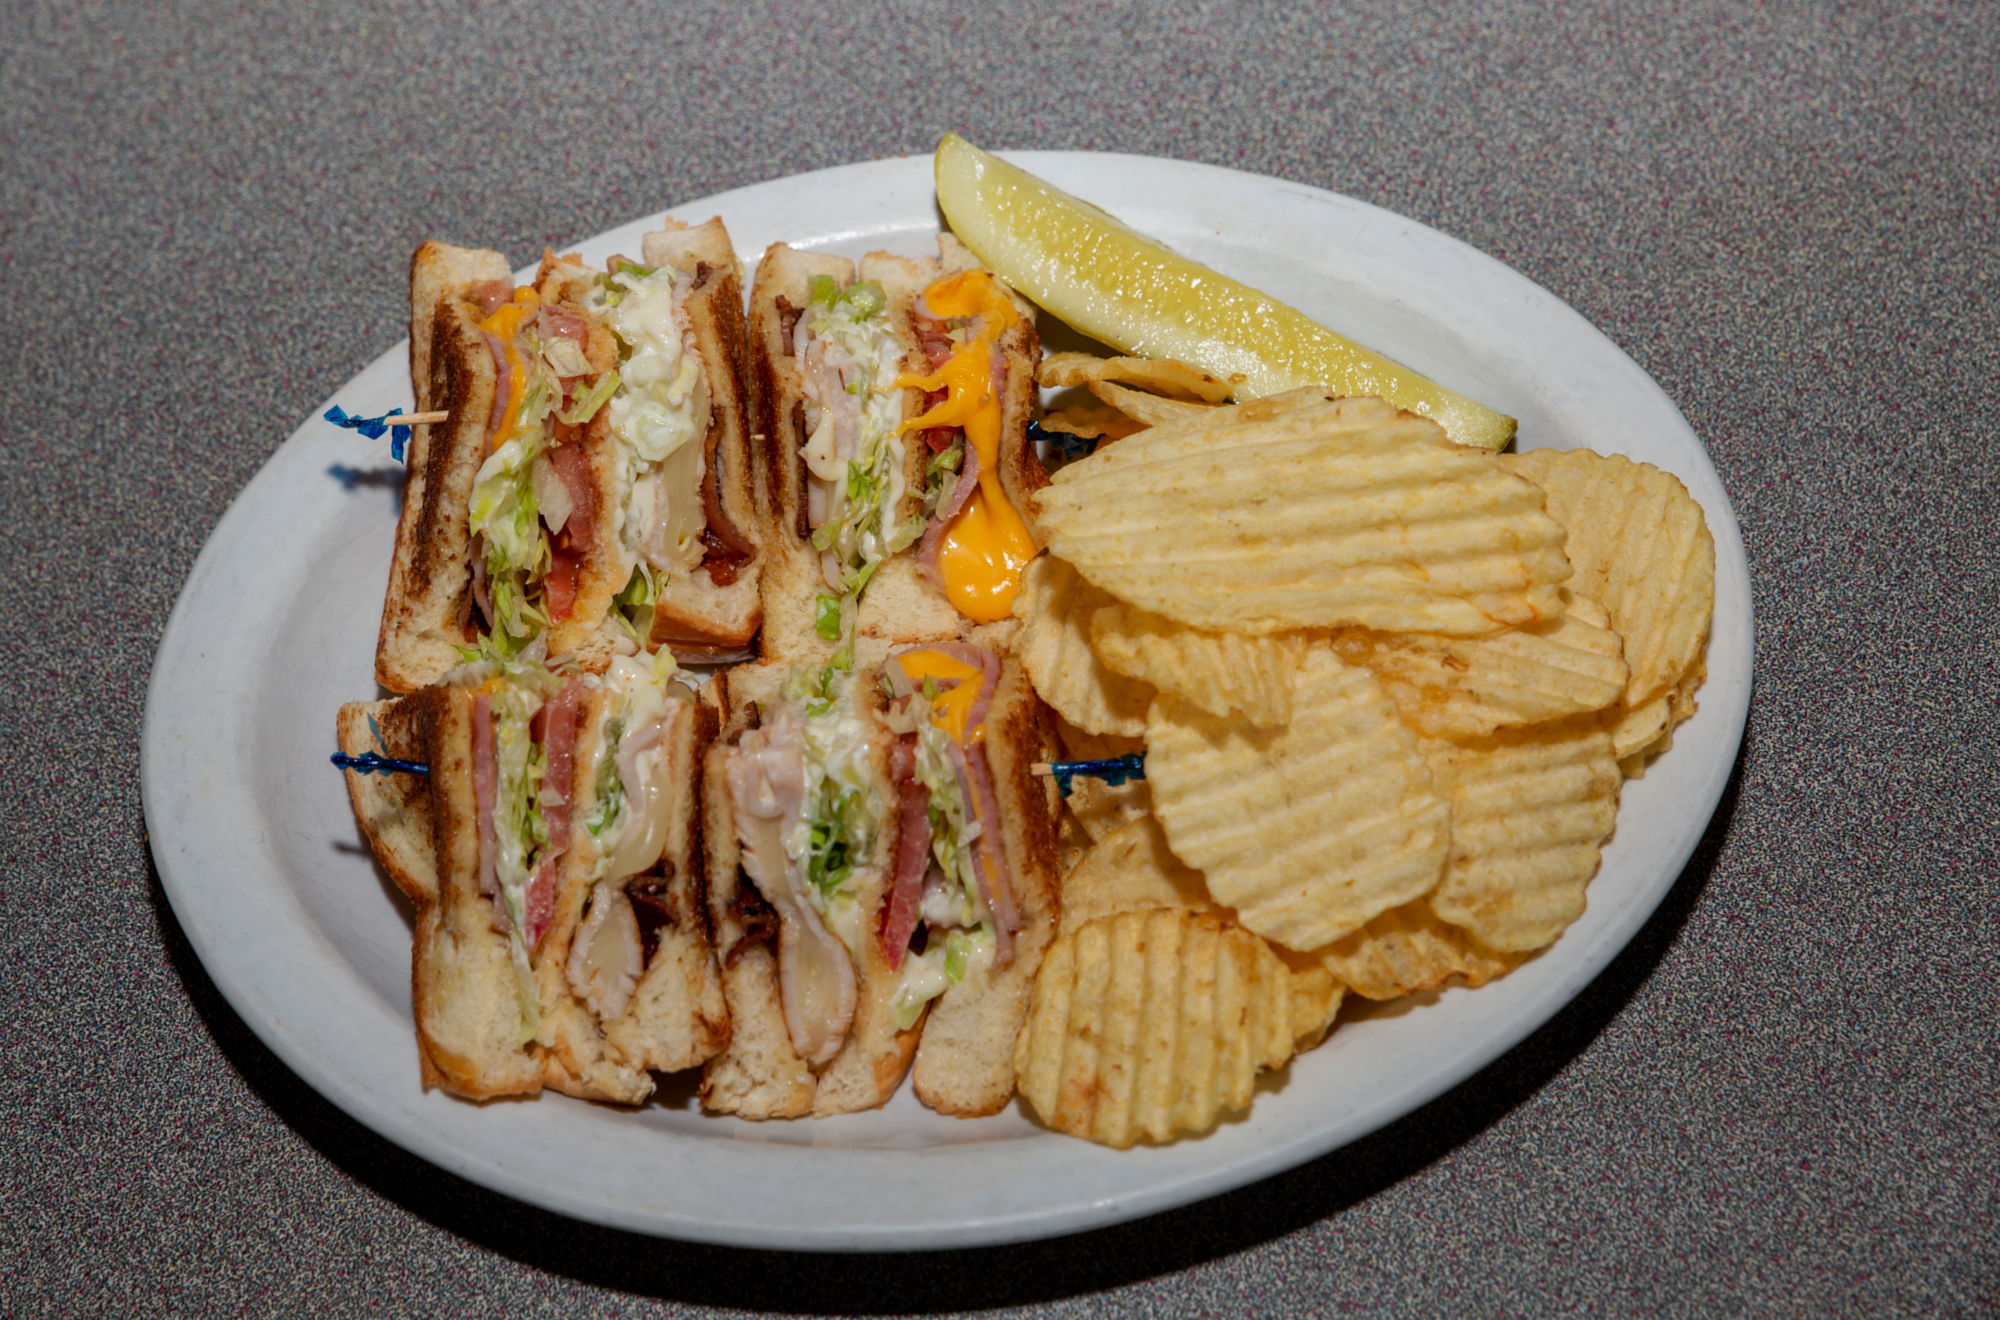 SANDWICHES IN EVERY STATE